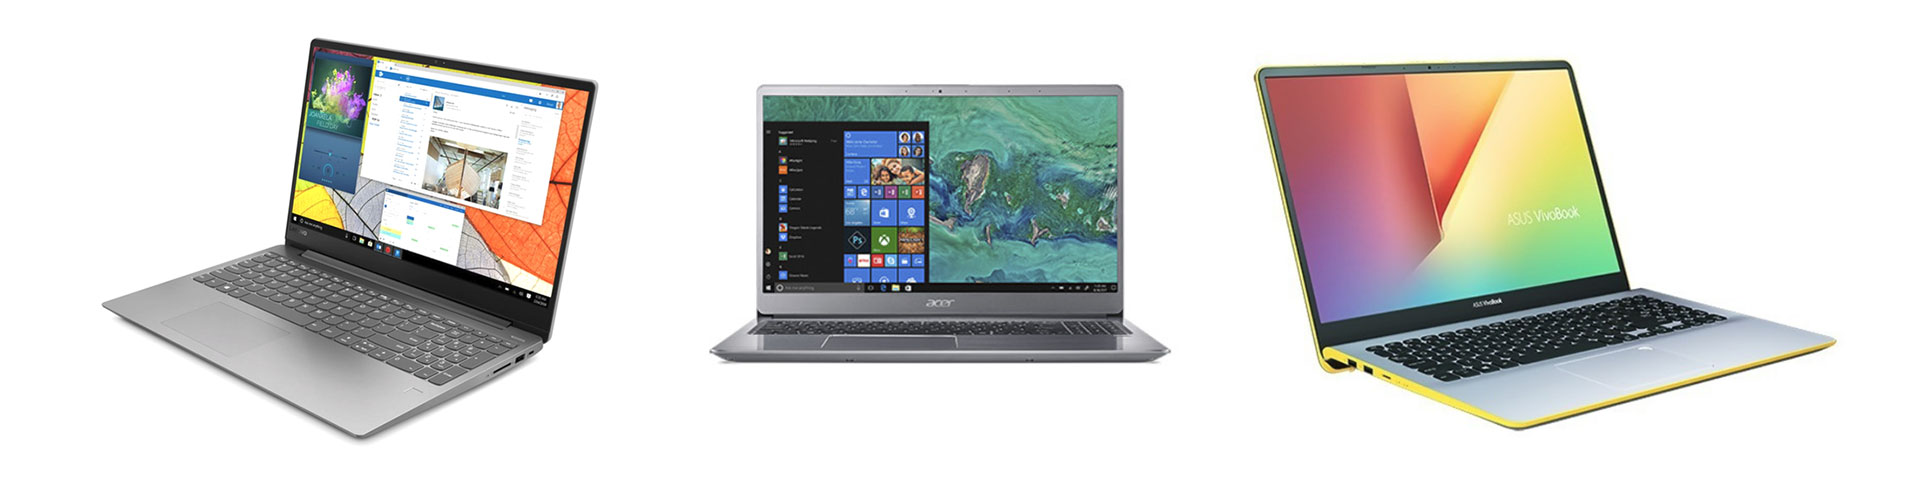 ba846ab9f6a Best portable laptops and ultrabooks in 2019 - complete buying guide